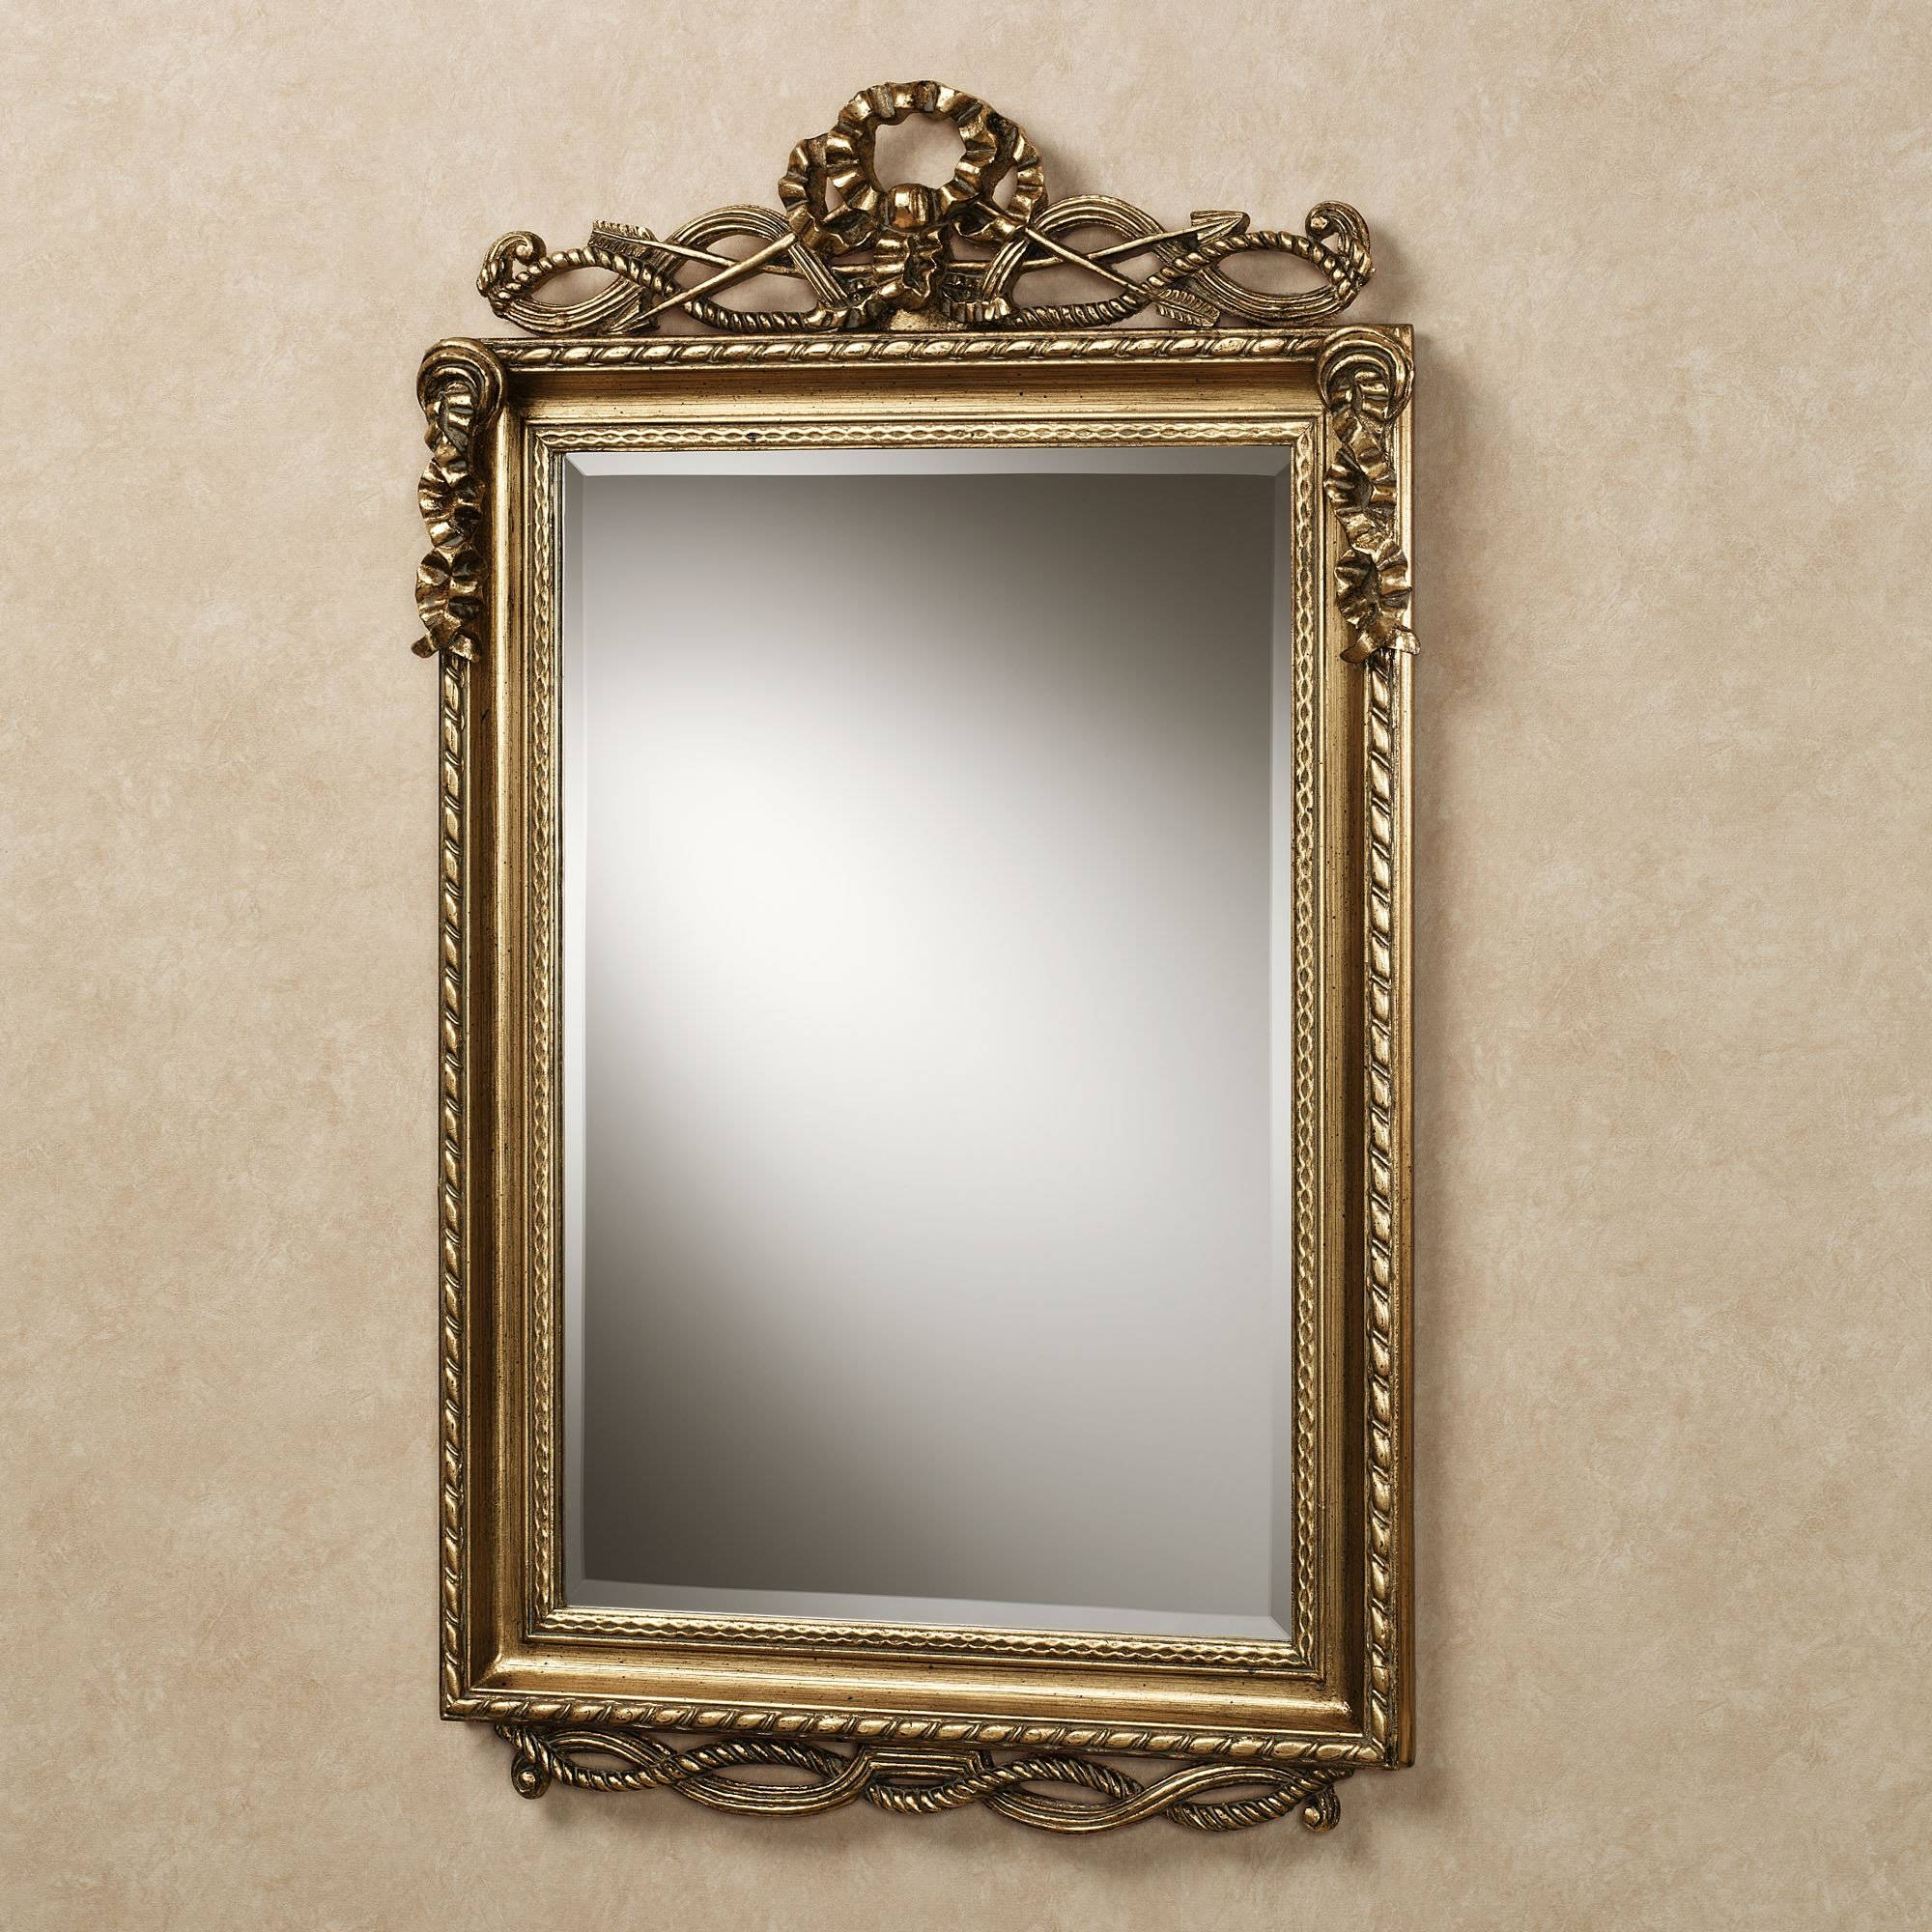 Shaped Vintage Wall Mirrors : Doherty House - A Beautiful Of with Vintage Mirrors (Image 18 of 25)